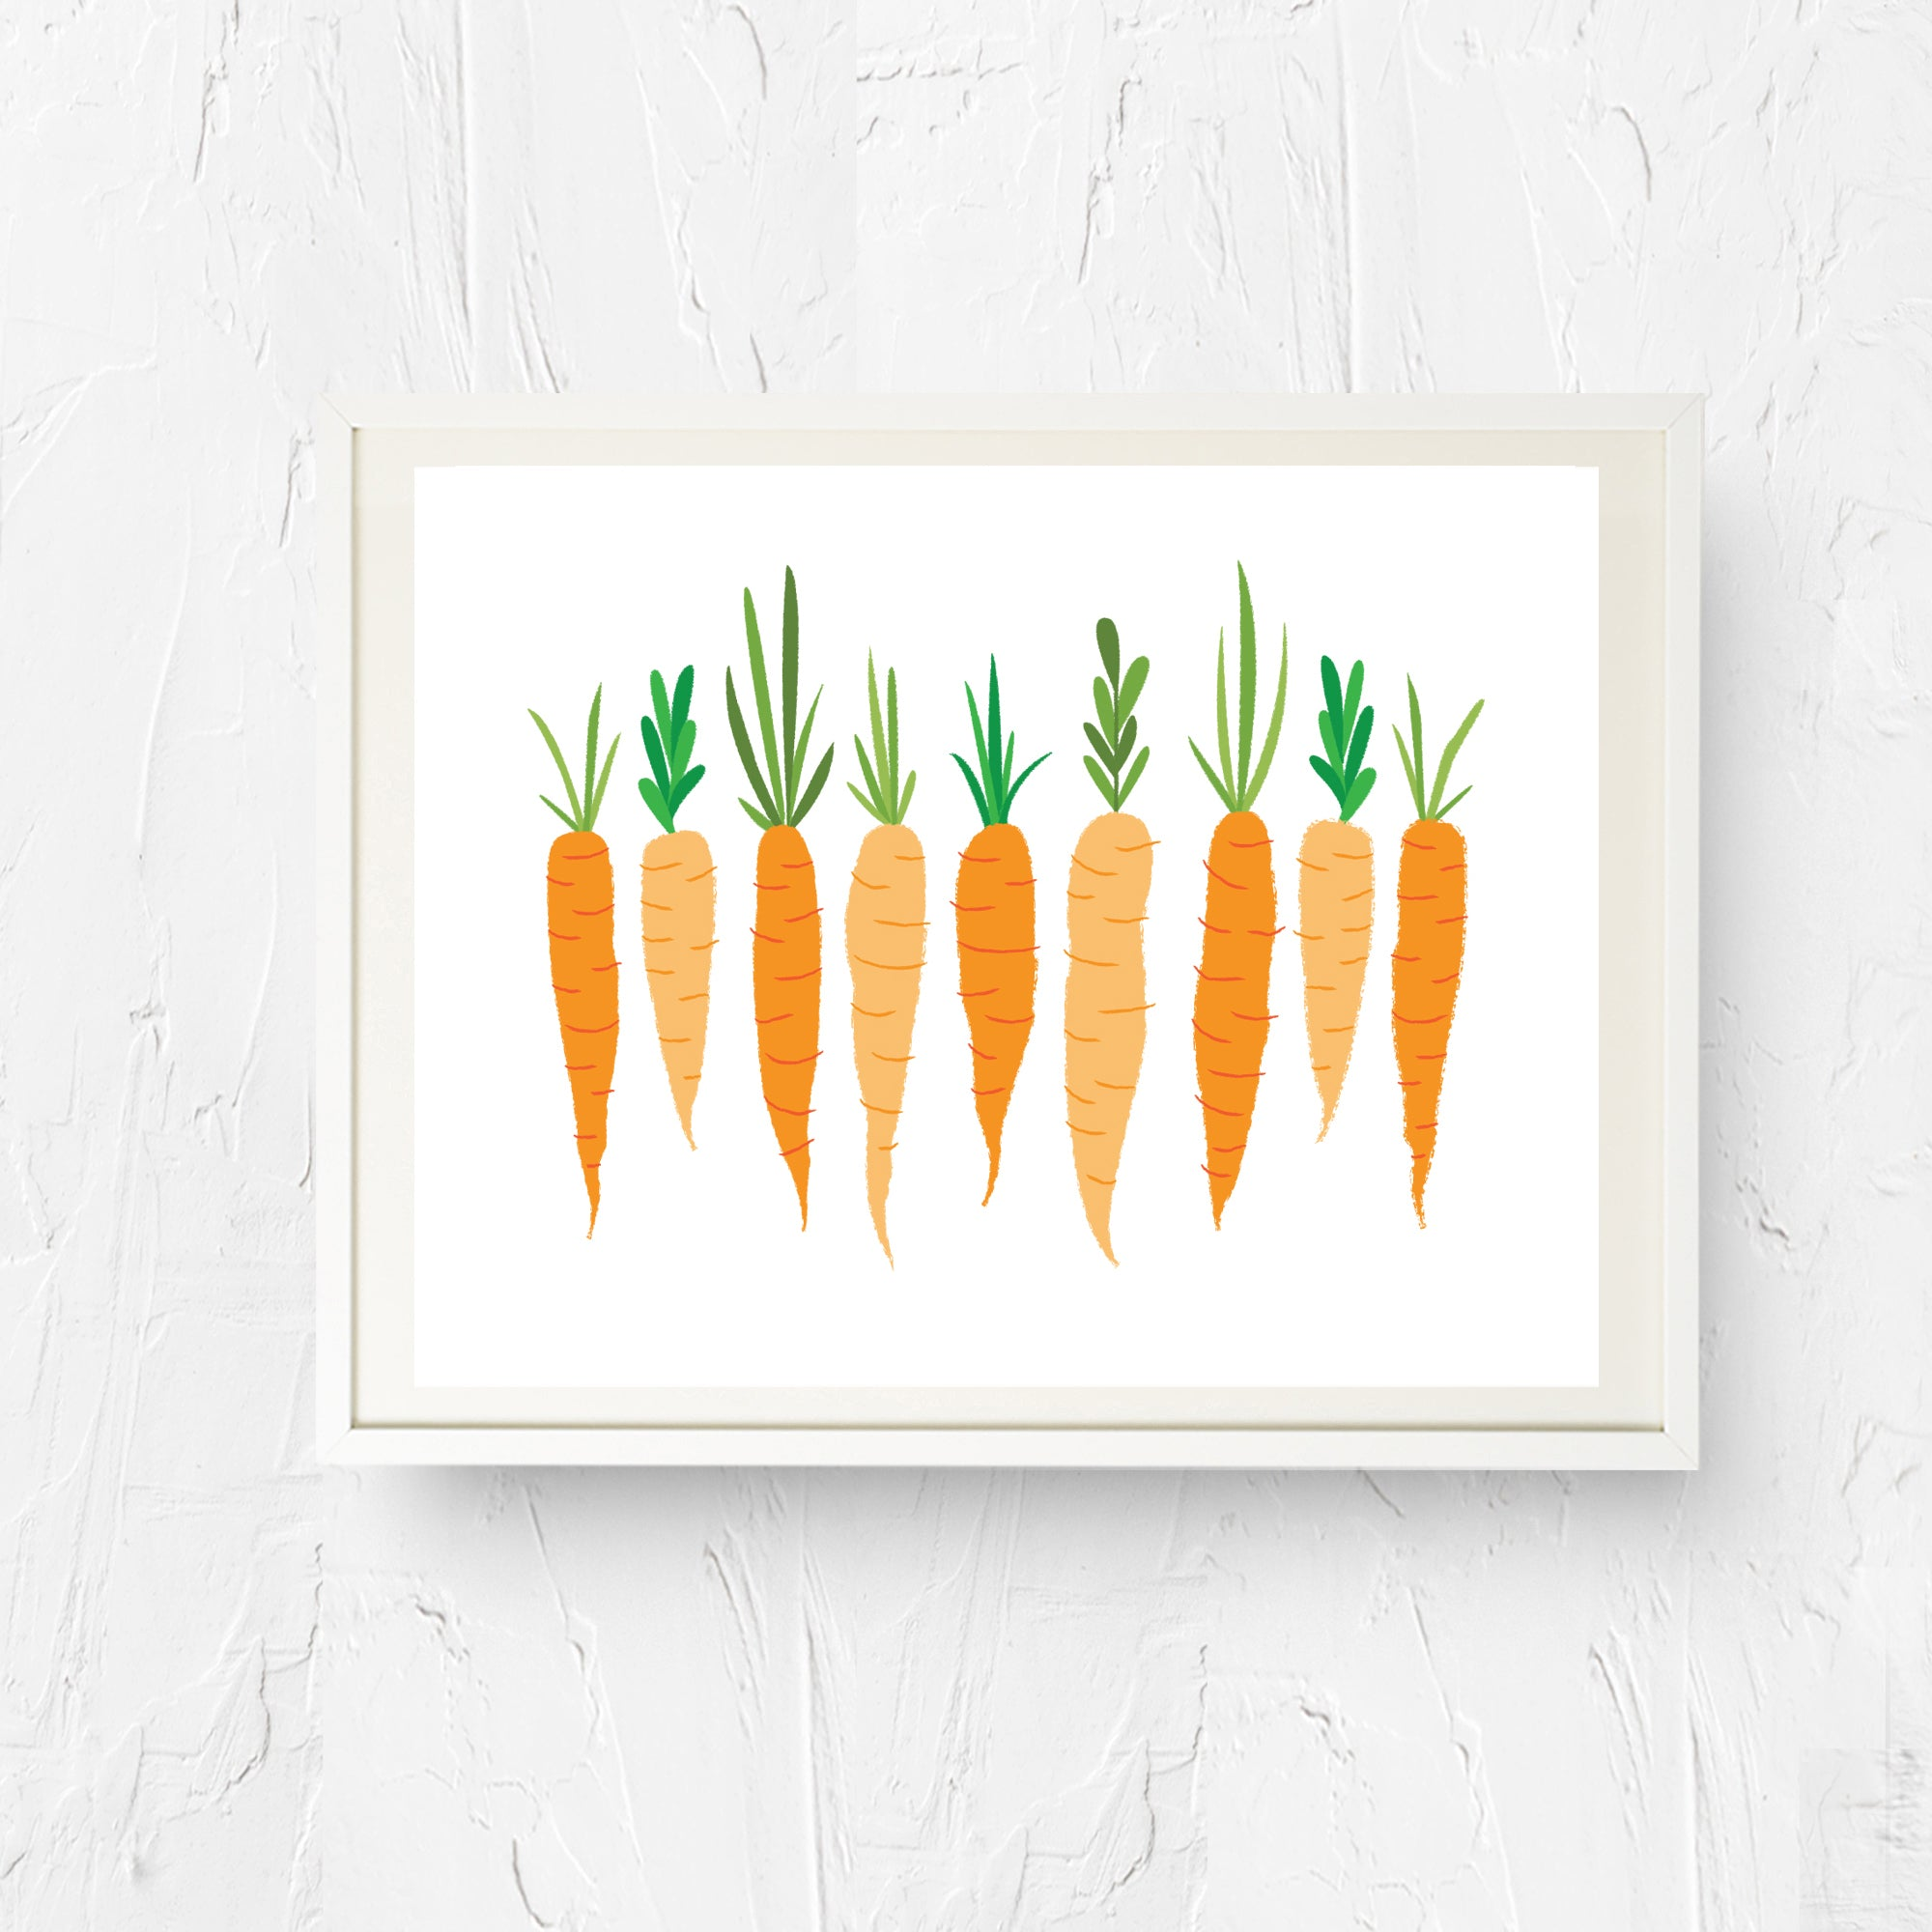 8x10, 11x14, art print, physical print, wall decor, free shipping, sale, coupon code, retro print, kitchen print, vegetable art, spring carrots, carrots print